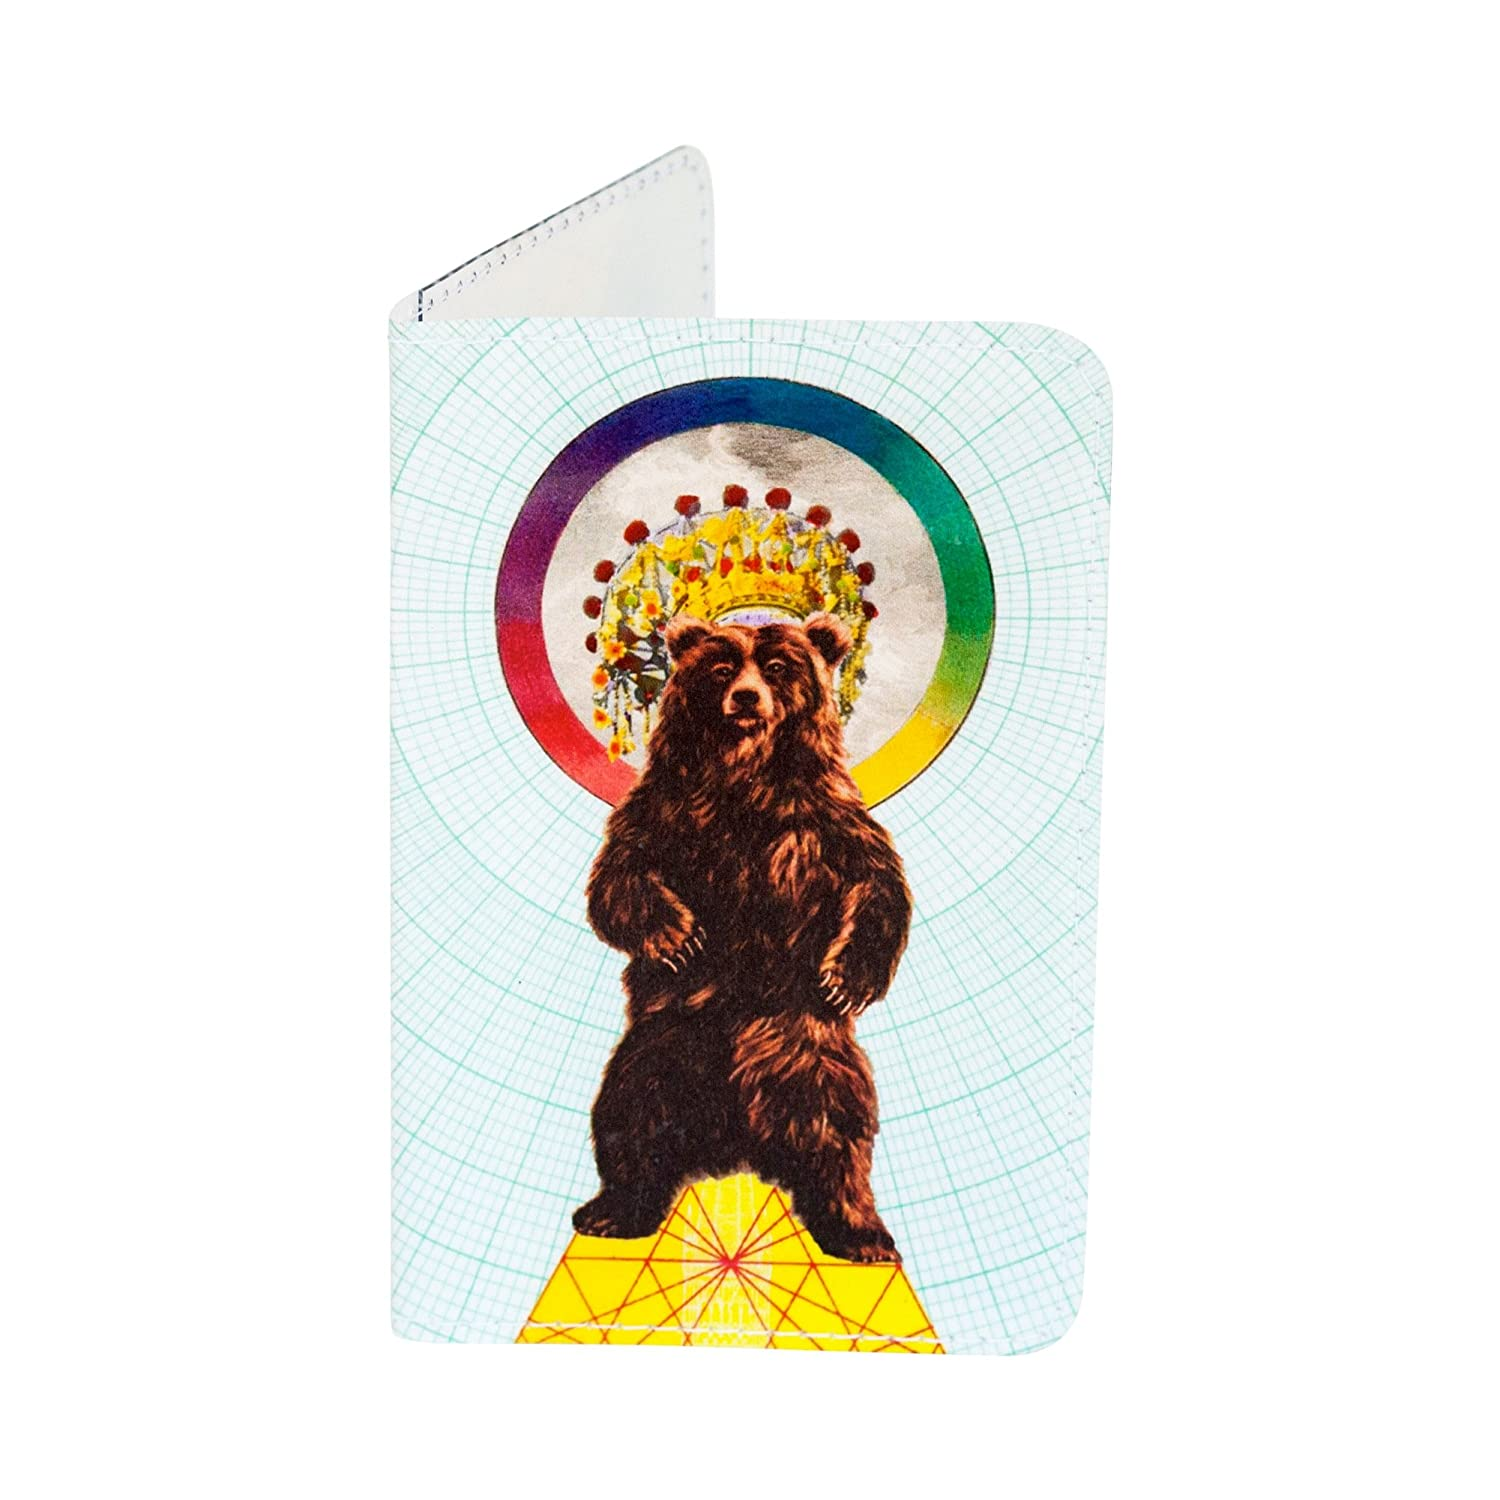 Magical Bear Gift Card Holder & Wallet GCH-2315A